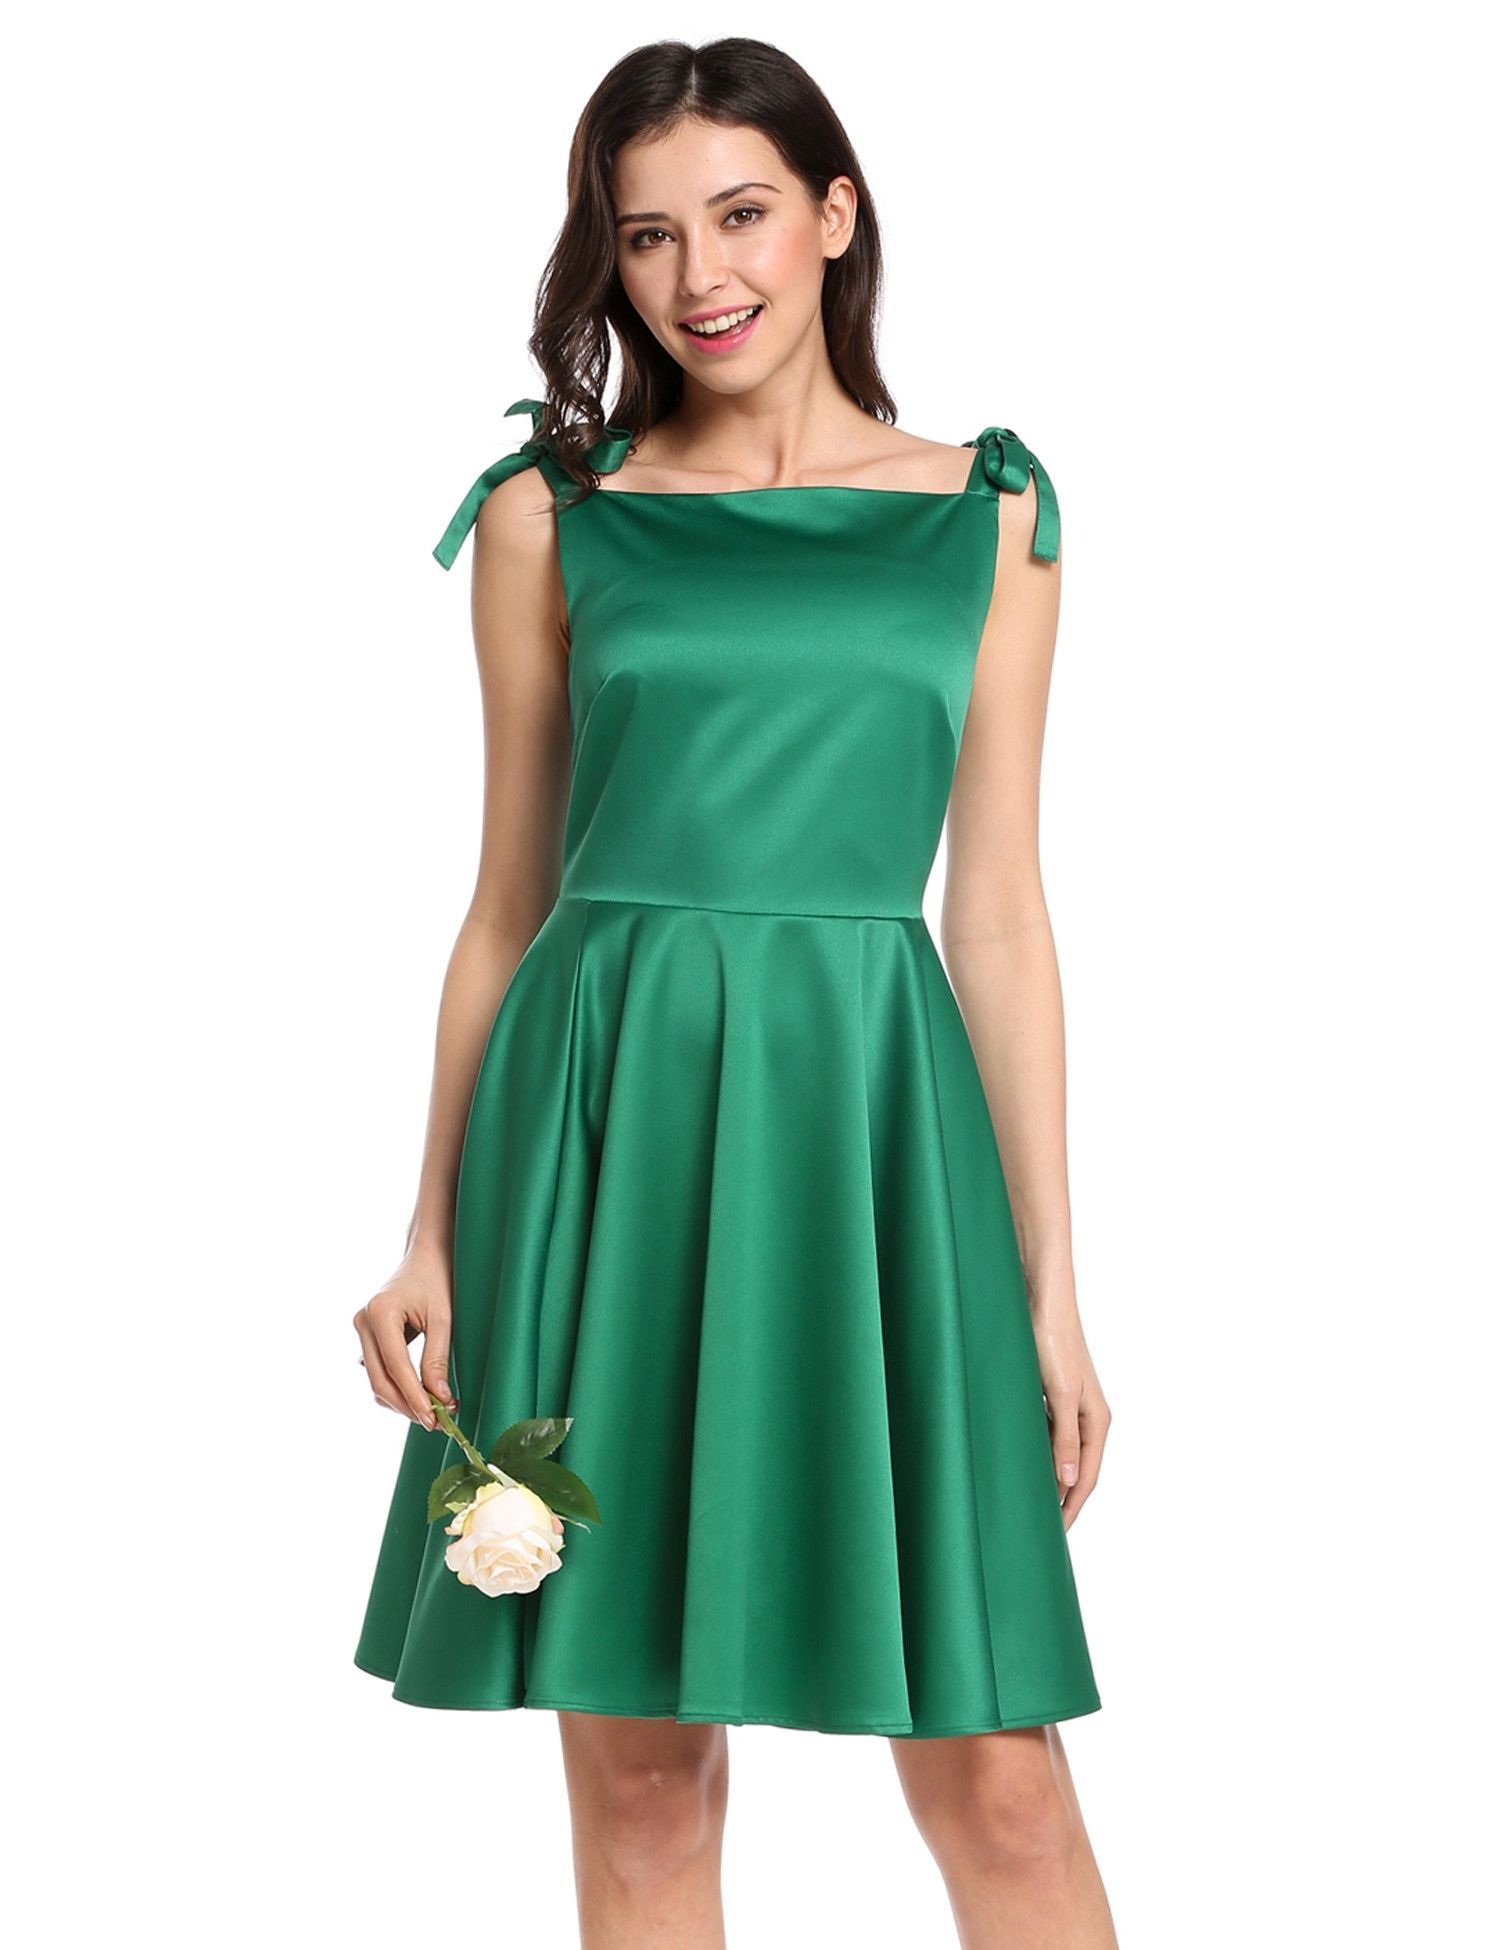 Green Square Neck Sleeveless Lace Up Vintage Style Party Dress ...